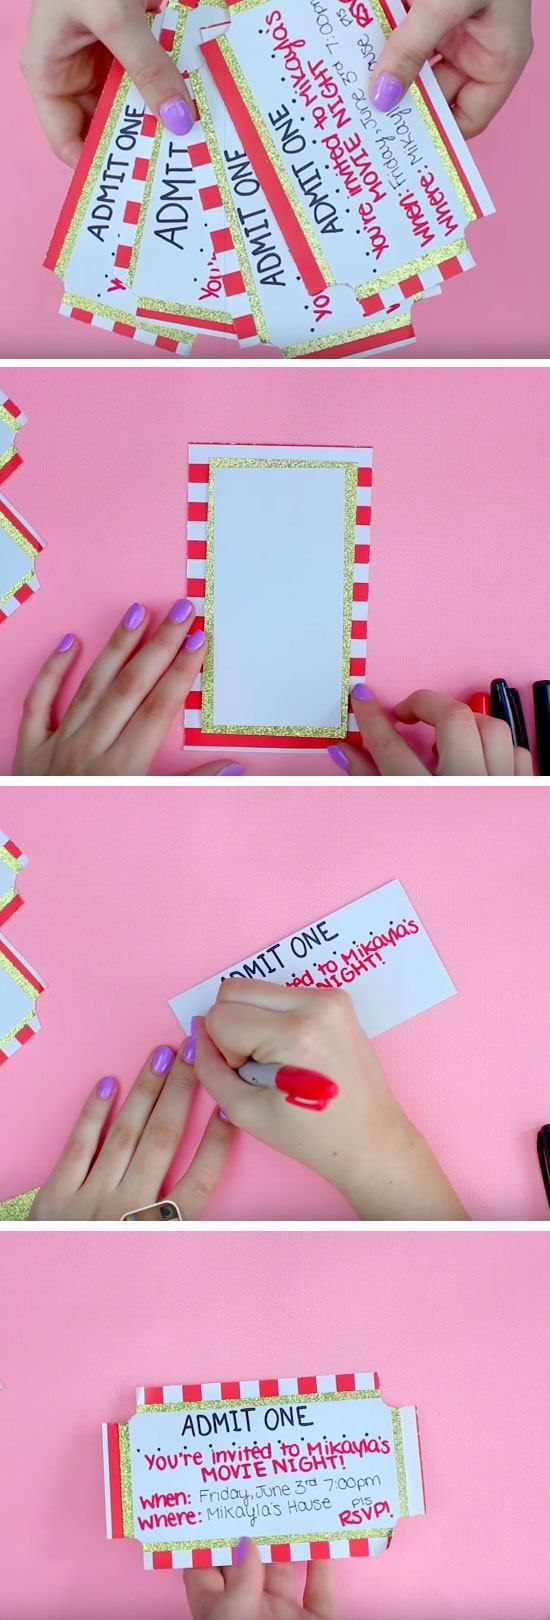 Movie Ticket | 19 DIY Movie Night Ideas for Teens that will get the party started!                                                                                                                                                                                 More